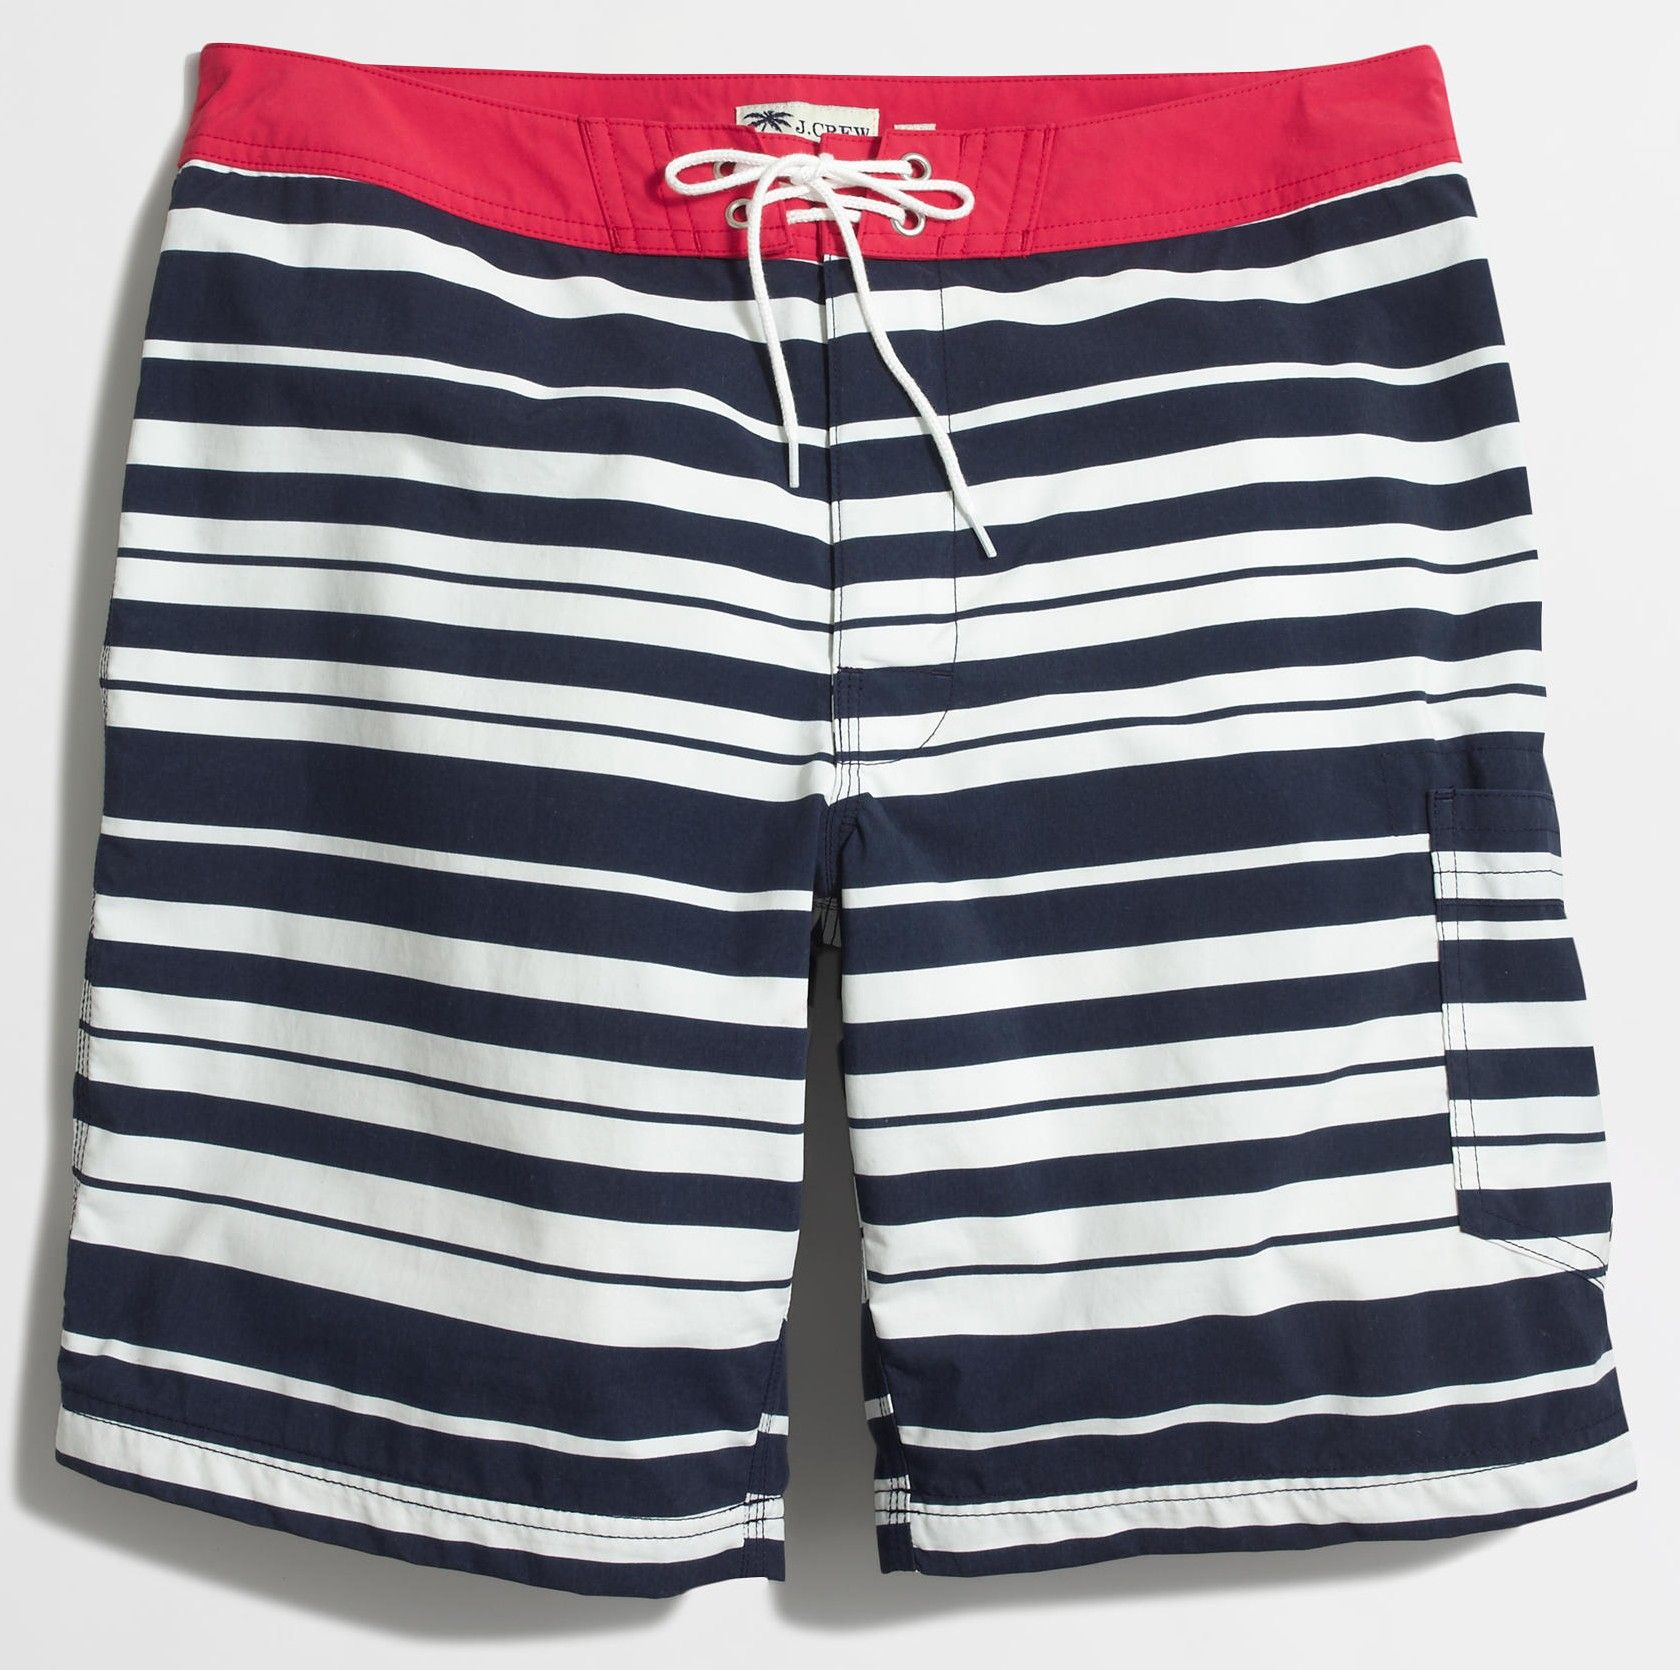 red-white-blue-striped-swim-trunks-for-men-2016 | Pantalonetas ...